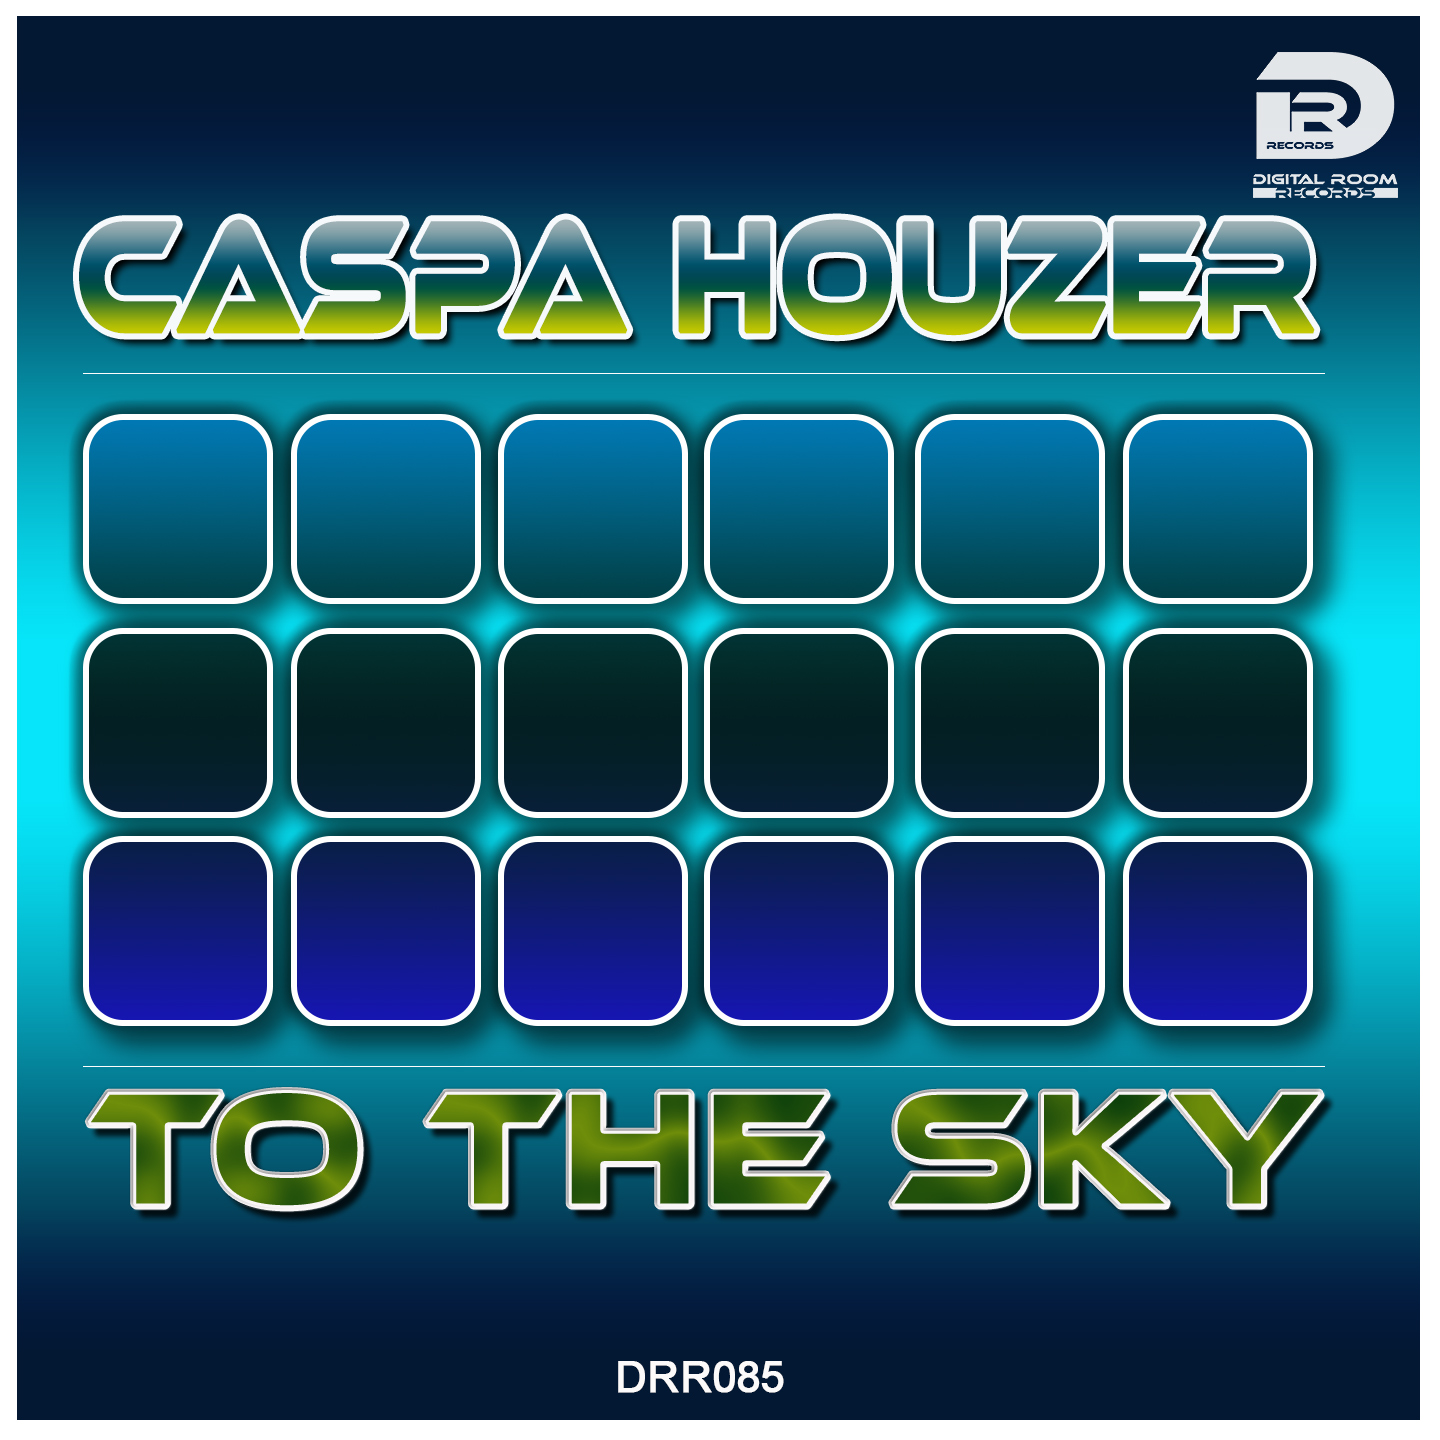 Caspa Houzer - To the sky